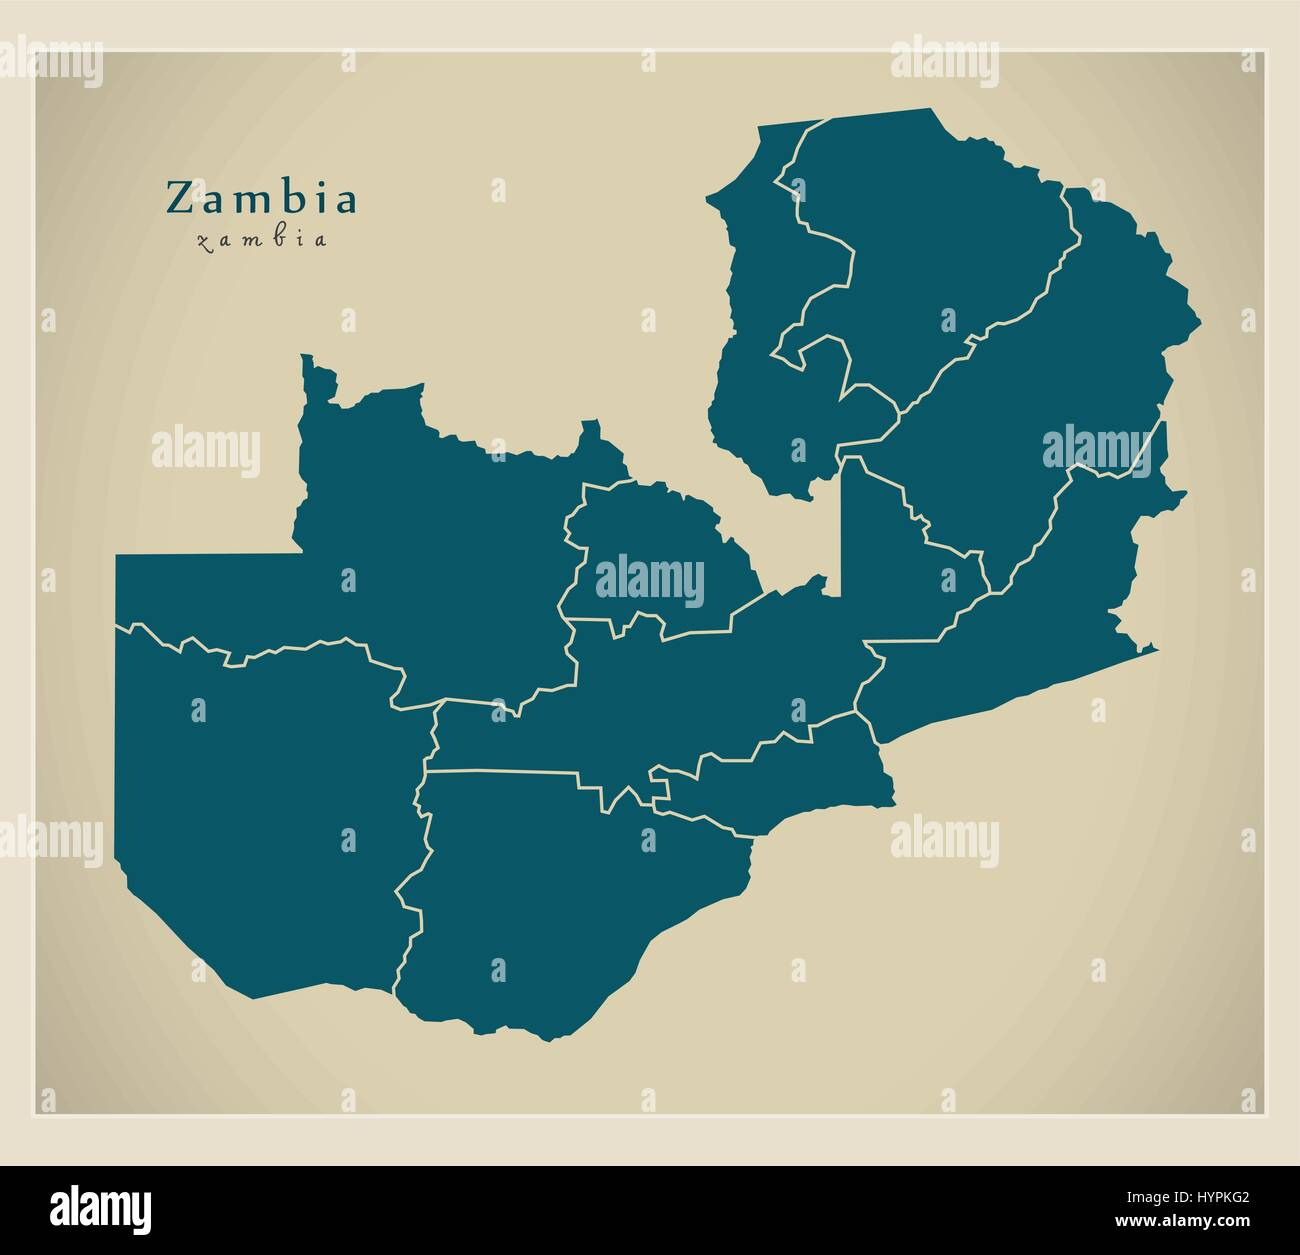 Modern Map - Zambia with provinces ZM - Stock Image